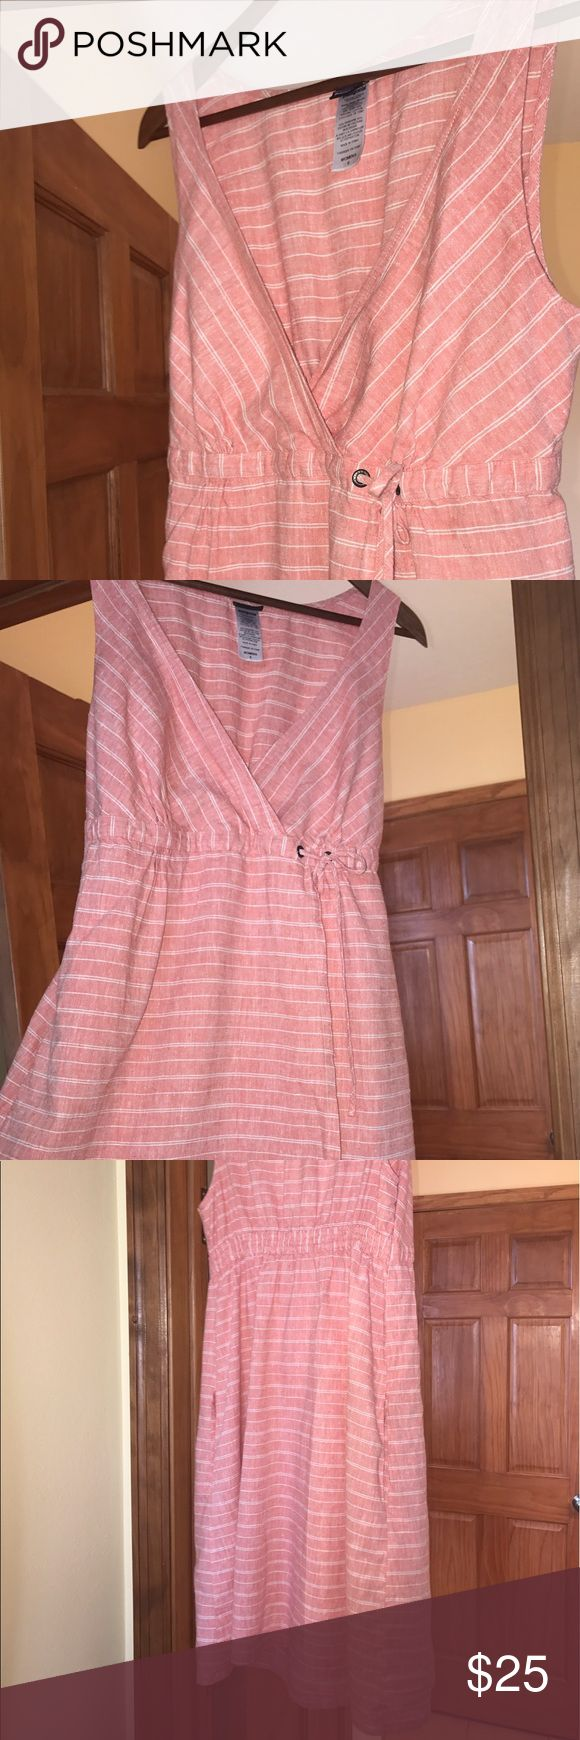 🌷Last day! MAY DAY SALE 🌷Patagonia Organic Summer staple dress with faux wrap, drawstring and elastic combination at waist, and flattering v-neckline. Organic fibers in a peach pink tone made by Patagonia, women's size 6. Patagonia Dresses